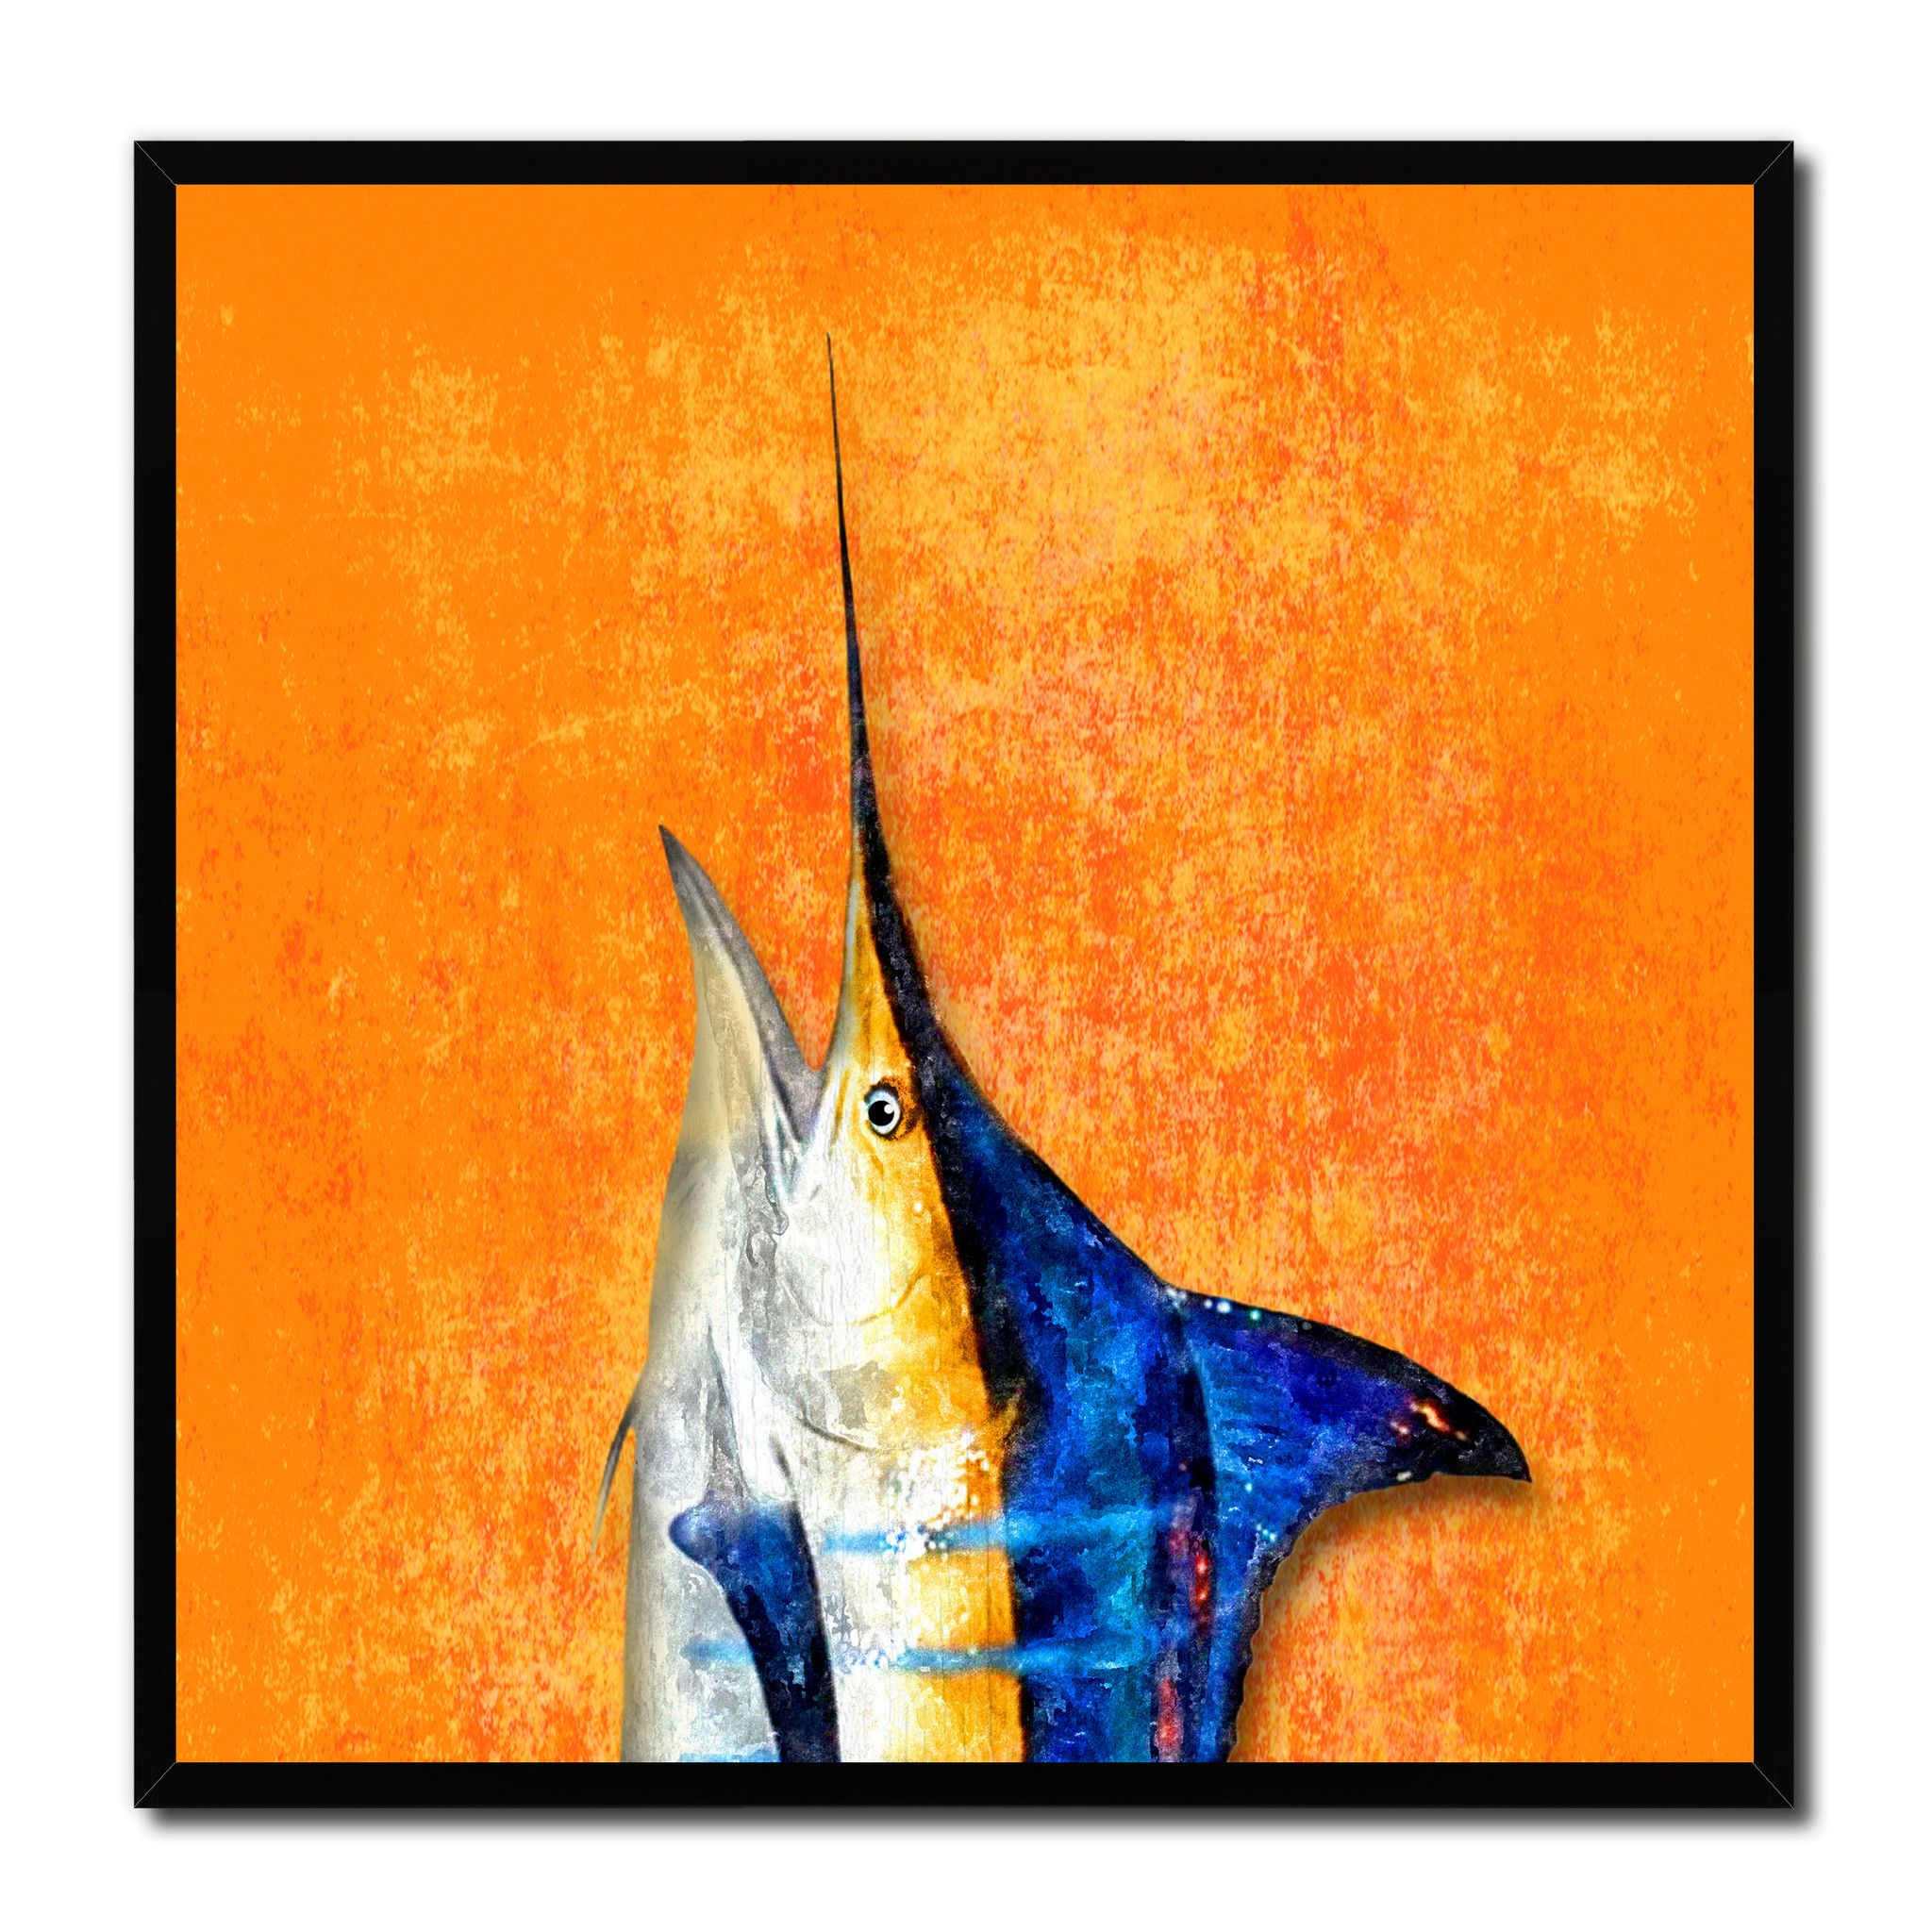 blue marlin fish head art orange canvas print picture frame wall